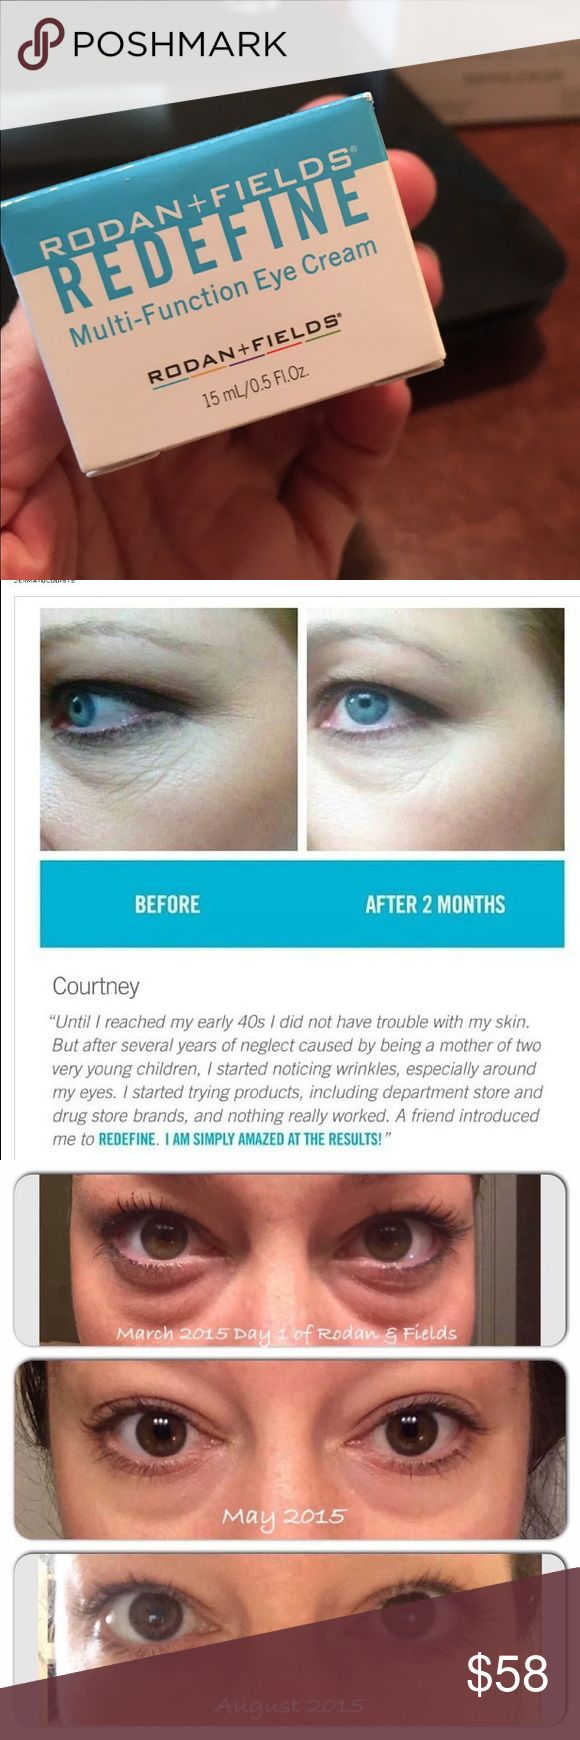 Rodan & Fields Redefine Eye Cream, Full Size If you haven't tried Rodan and Fields Redefine Eye-cream, you will want to start now! The results are real and the proof is found in all of before and afters of successful Rodan and Fields Consultants and Customers!! Retail Price is $62 plus a shipping cost of $9-12. Get it here for less this one time! dmecchella.myrandf.com Rodan & Fields Other